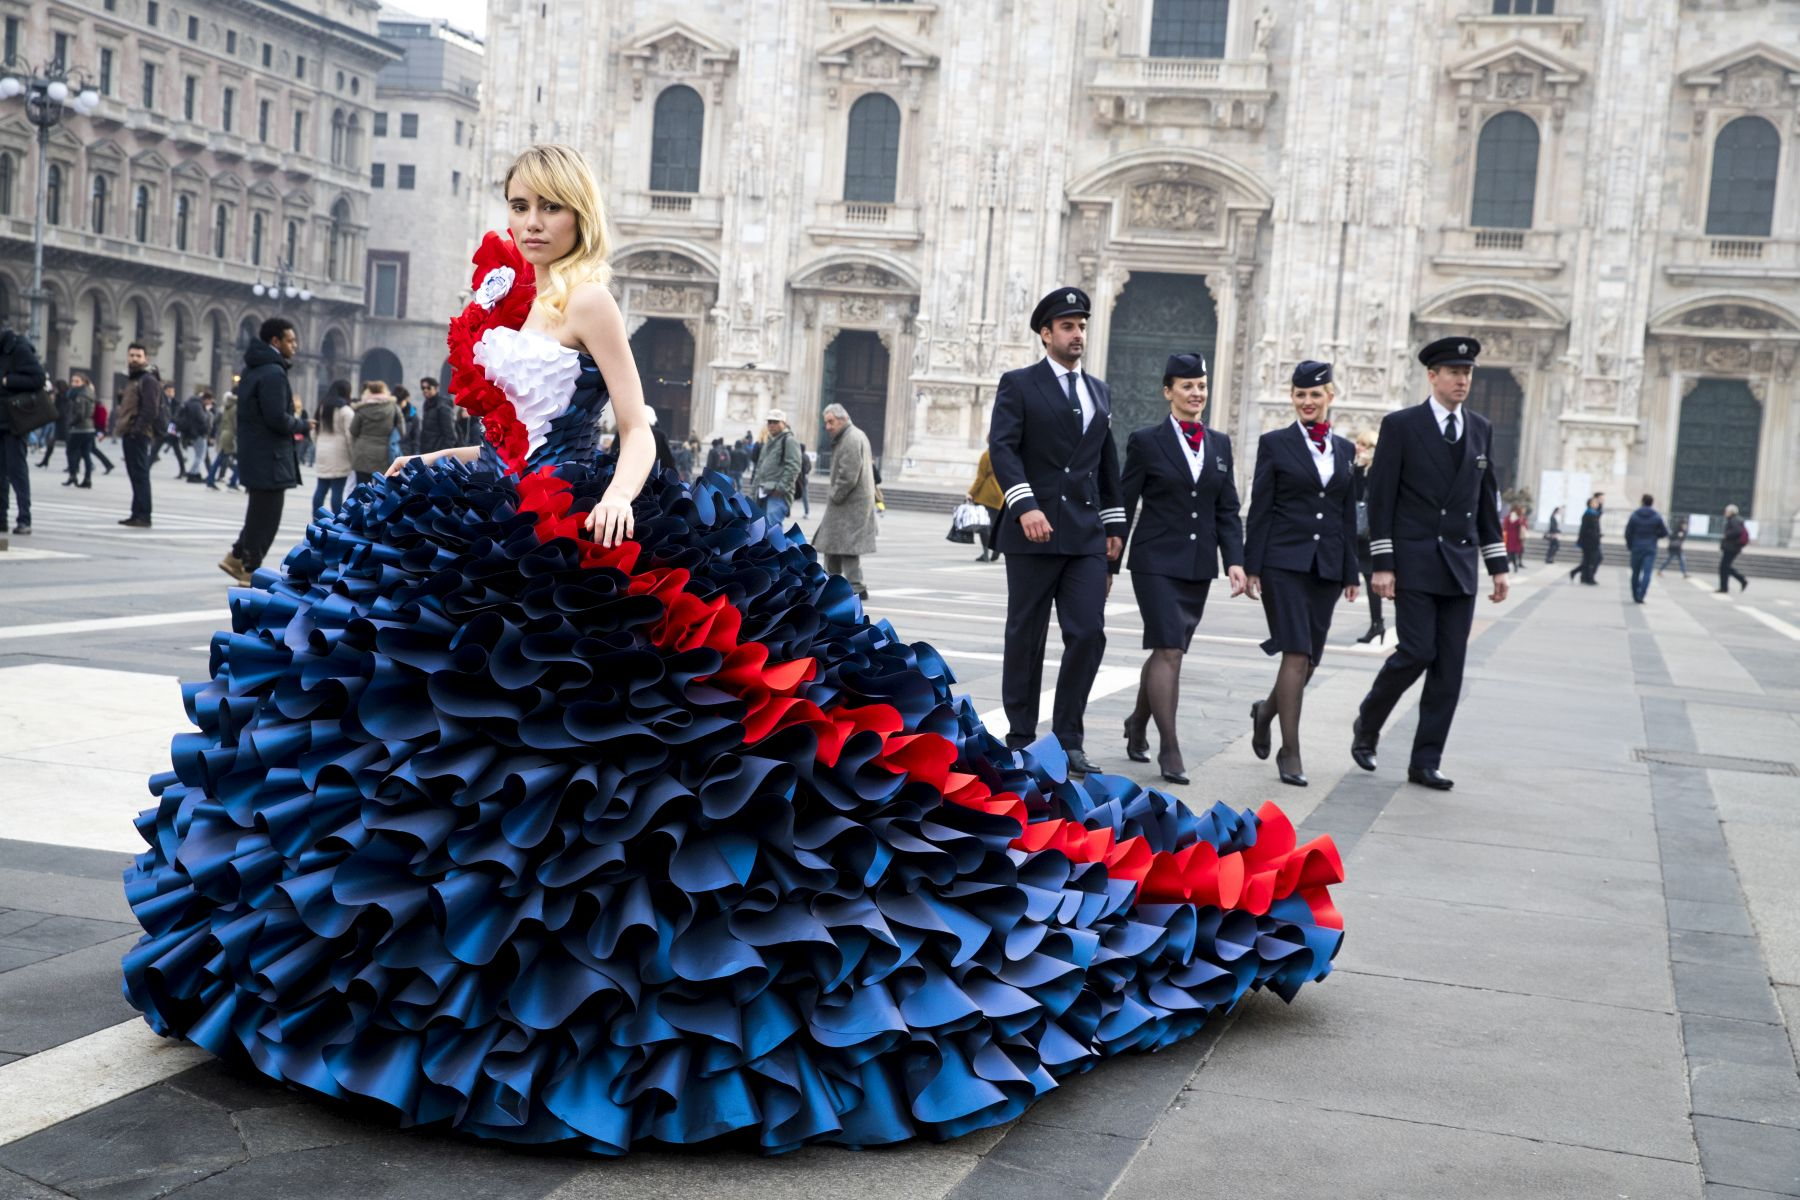 In this handout image supplied by British Airways the airline celebrated its love of Milan by taking British supermodels Suki Waterhouse and David Gandy out onto the city's fashionable streets for two very special photoshoots - followed by an exclusive fashion show and very British afternoon tea experience